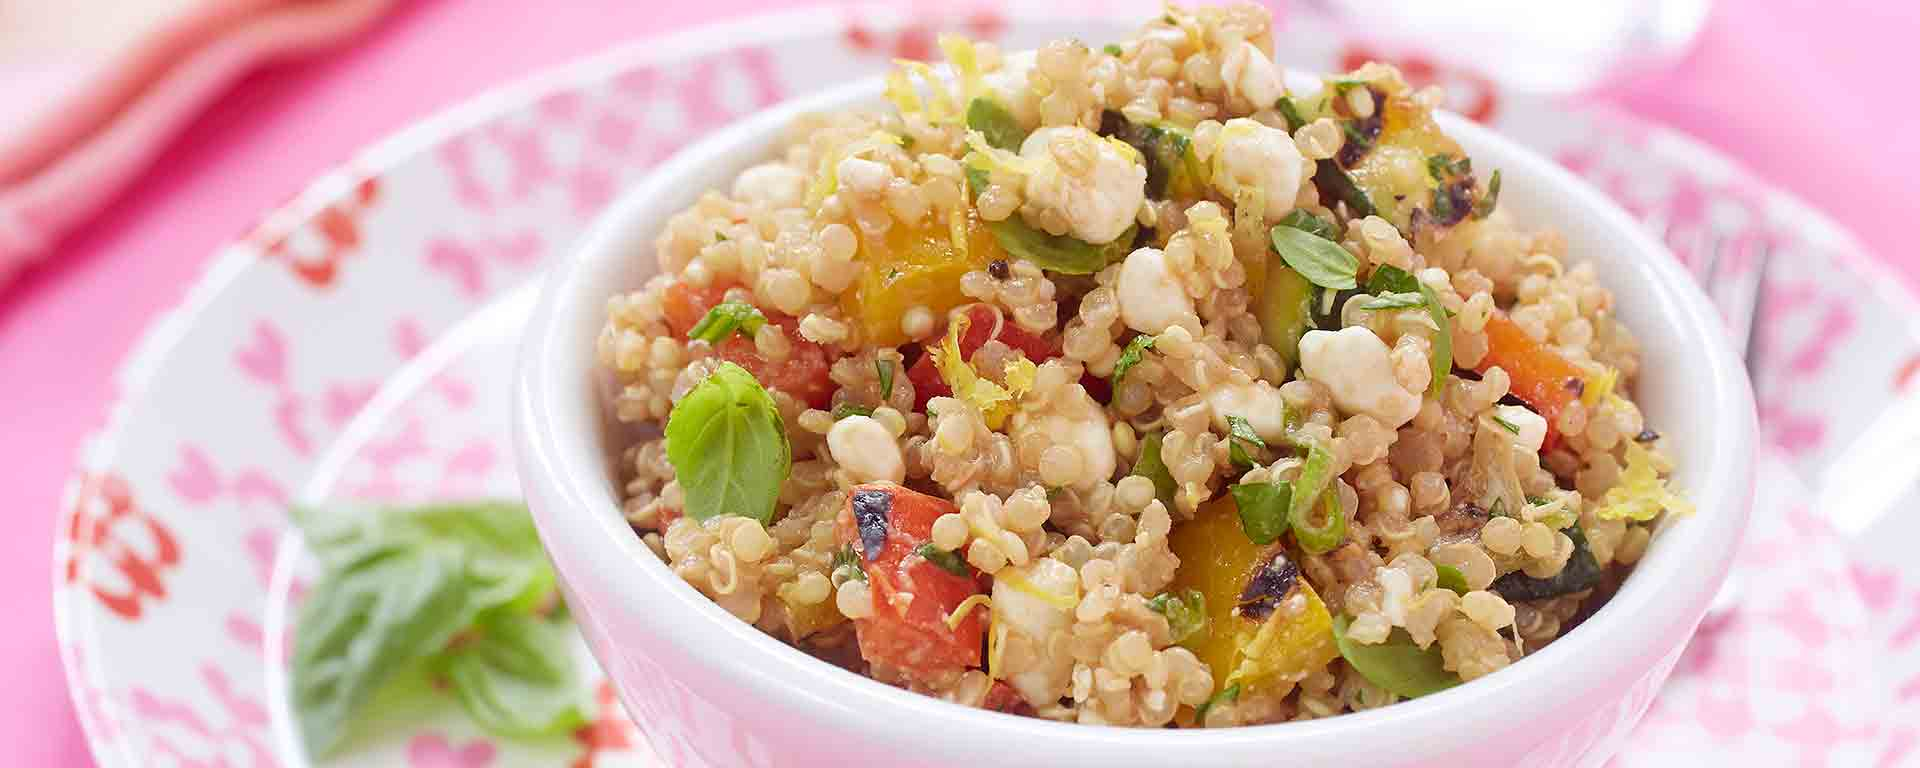 Photo for - Quinoa Salad with Grilled Vegetables and Cottage Cheese